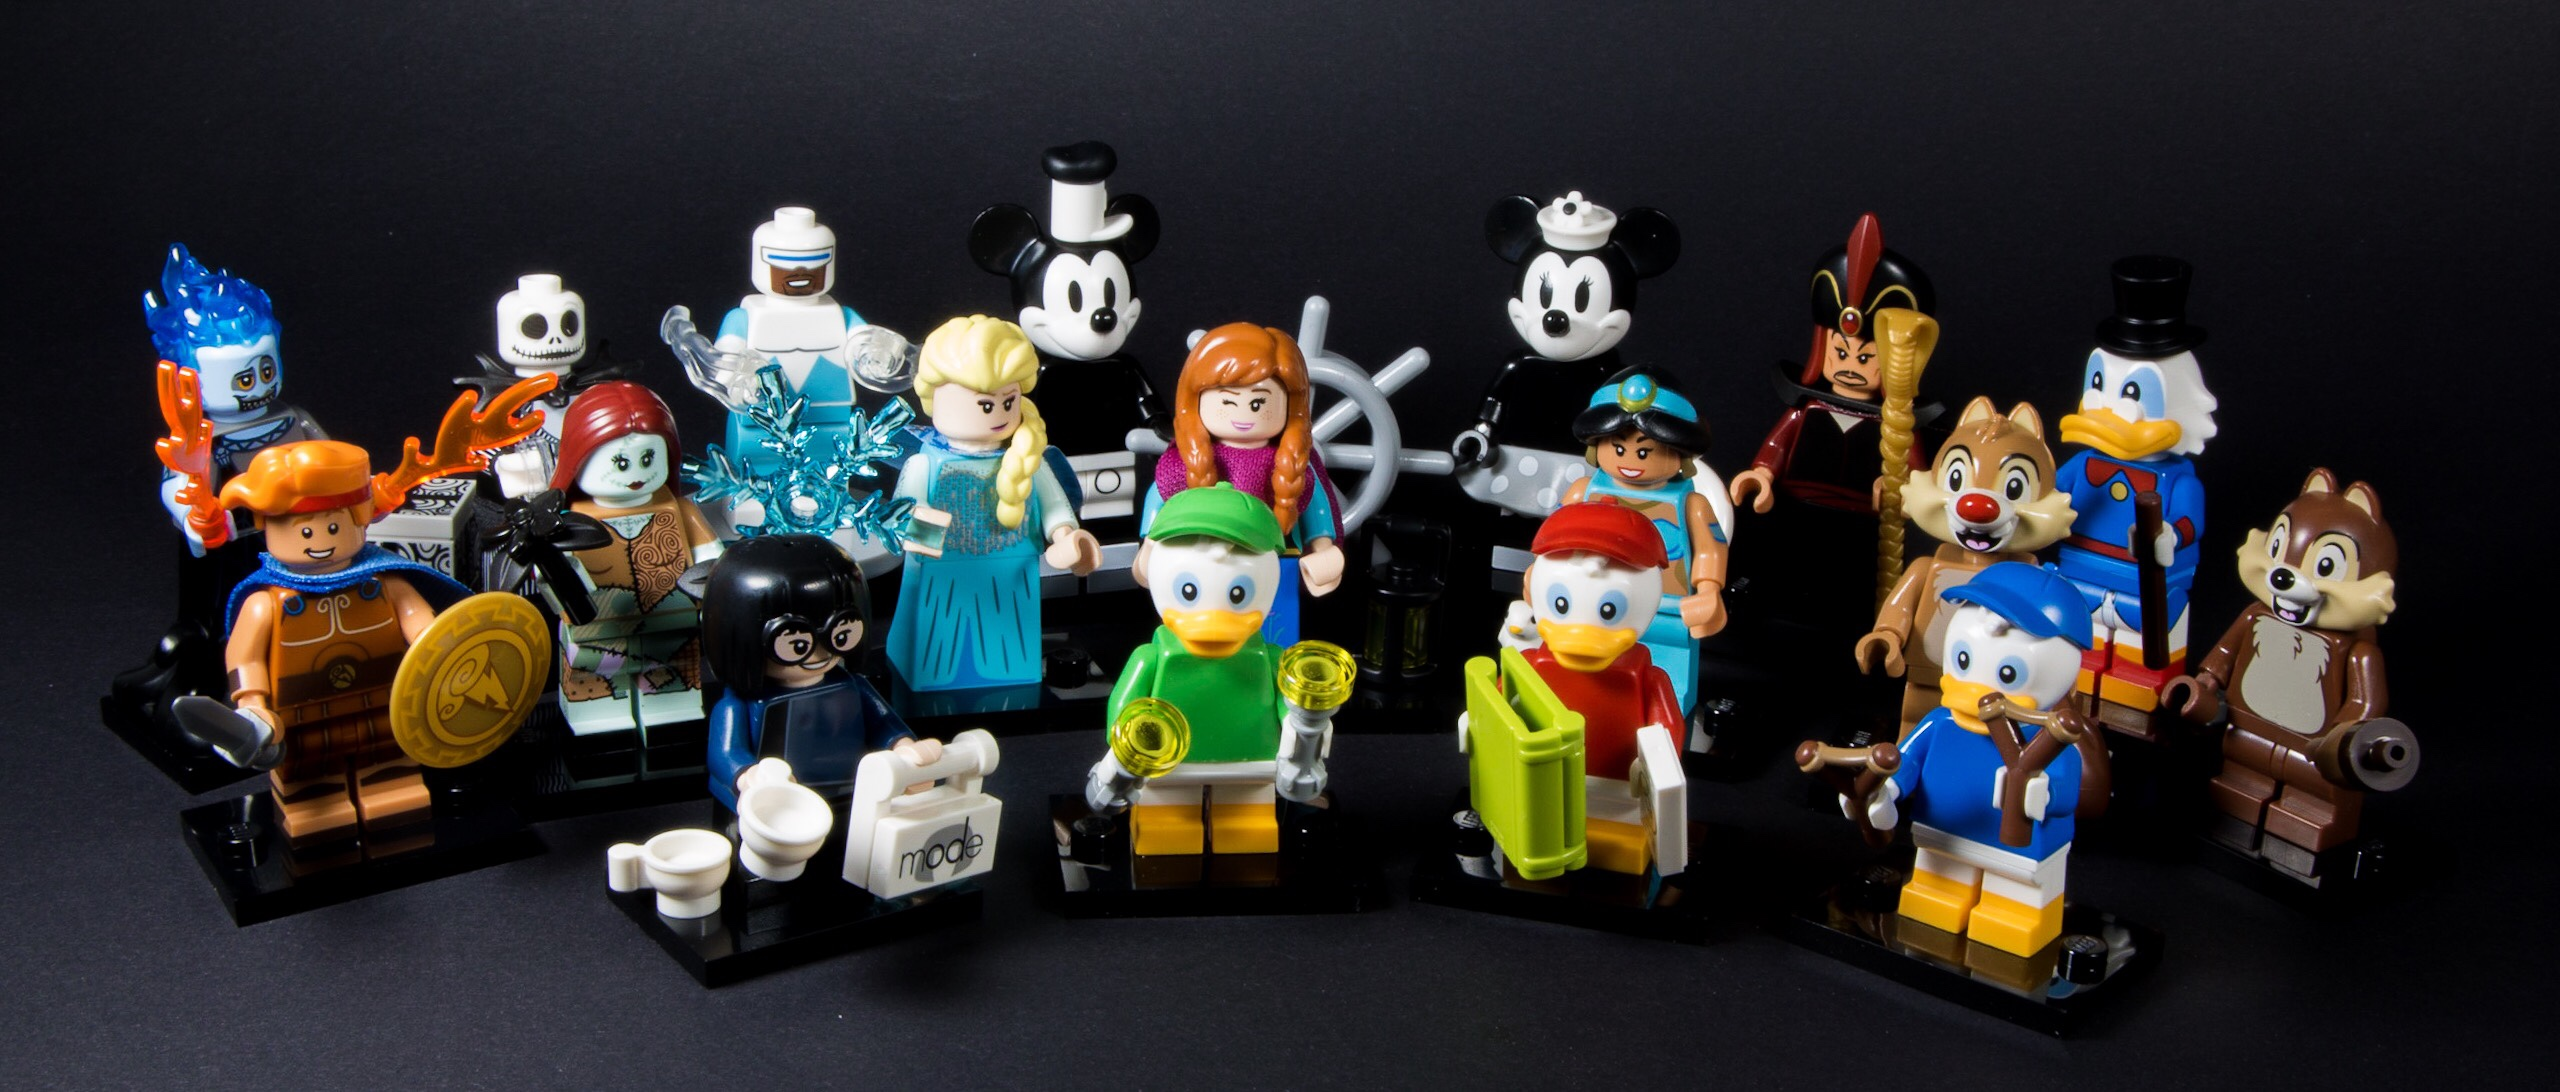 lego disney minifigures series 2 15 Out Of 18 Missing Little Ducks